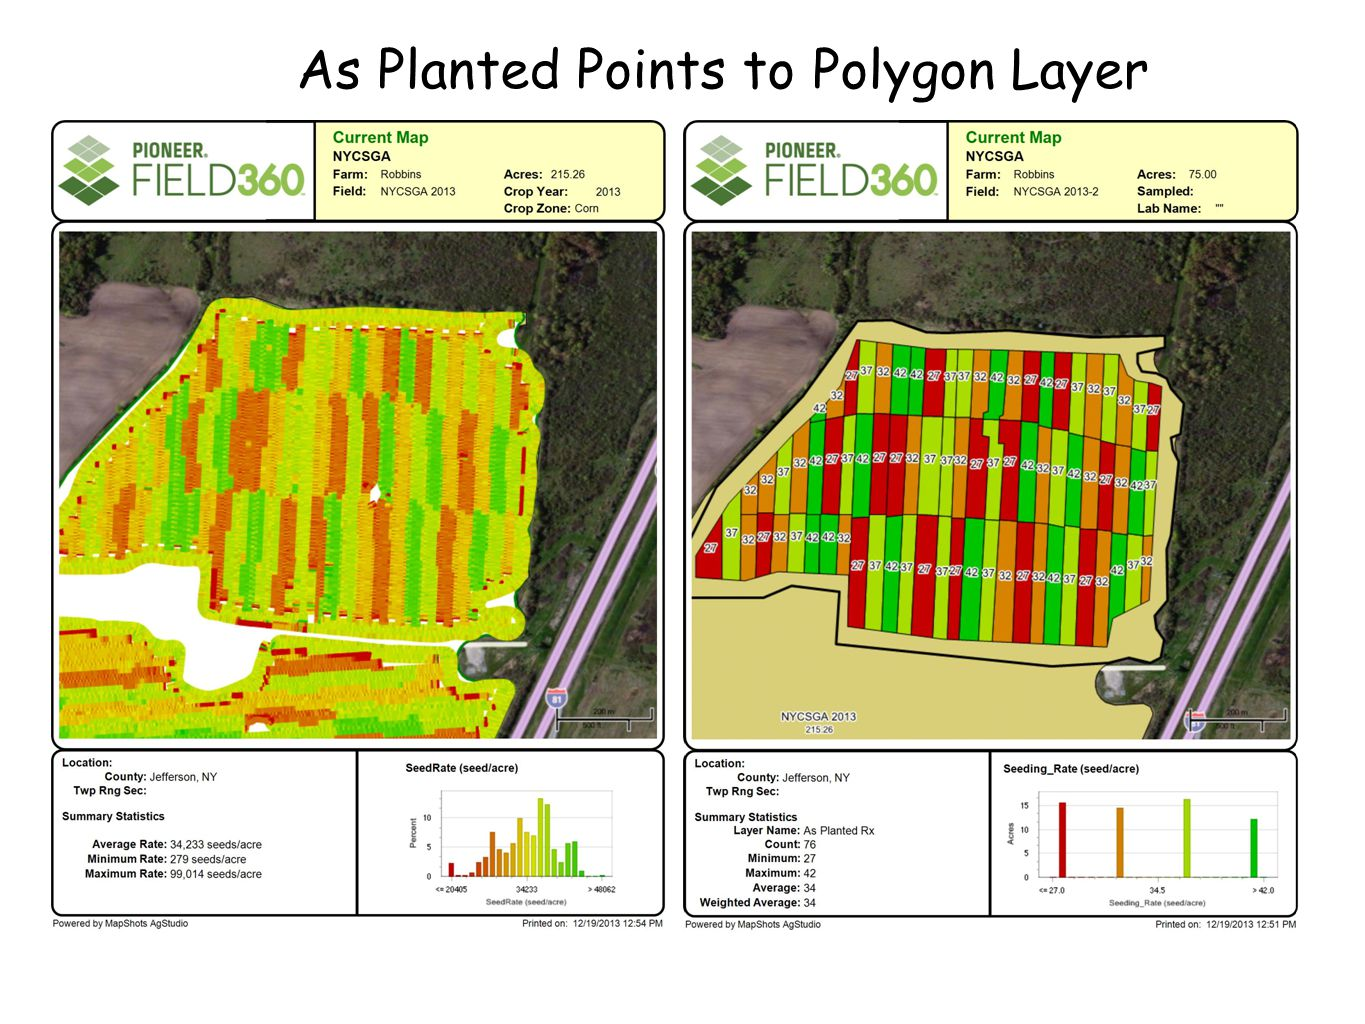 As Planted Points to Polygon Layer